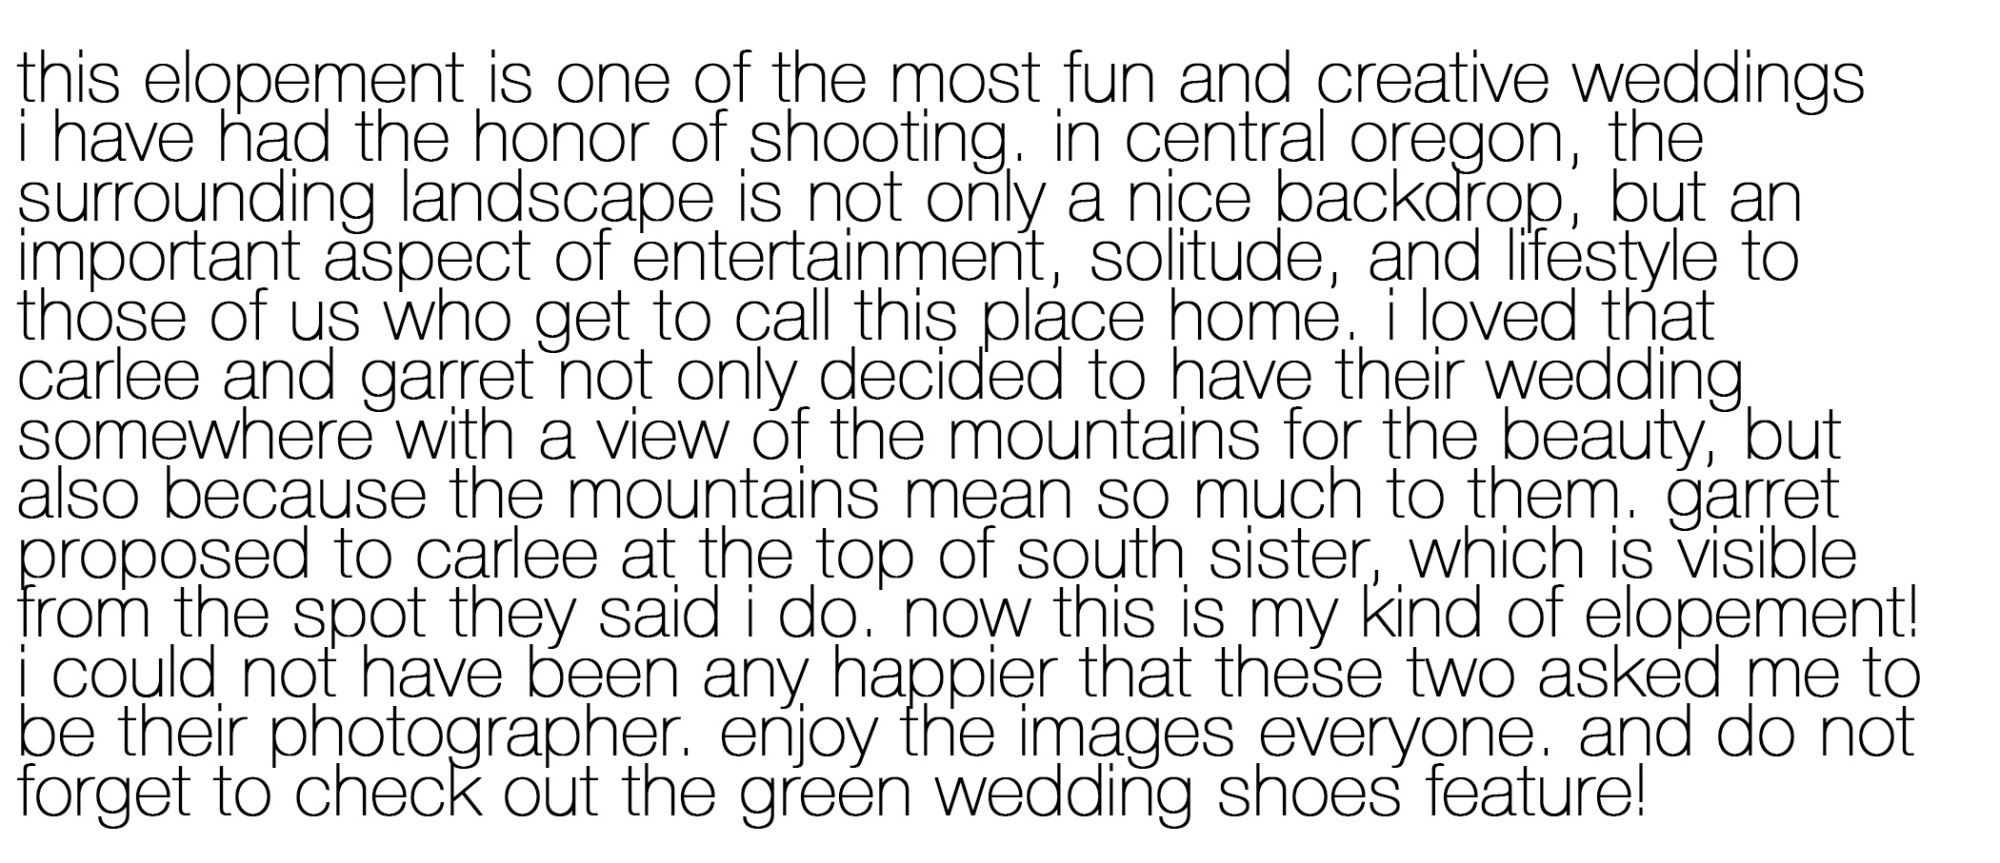 Green Wedding Shoes Feature Victoria Carlson Story 2